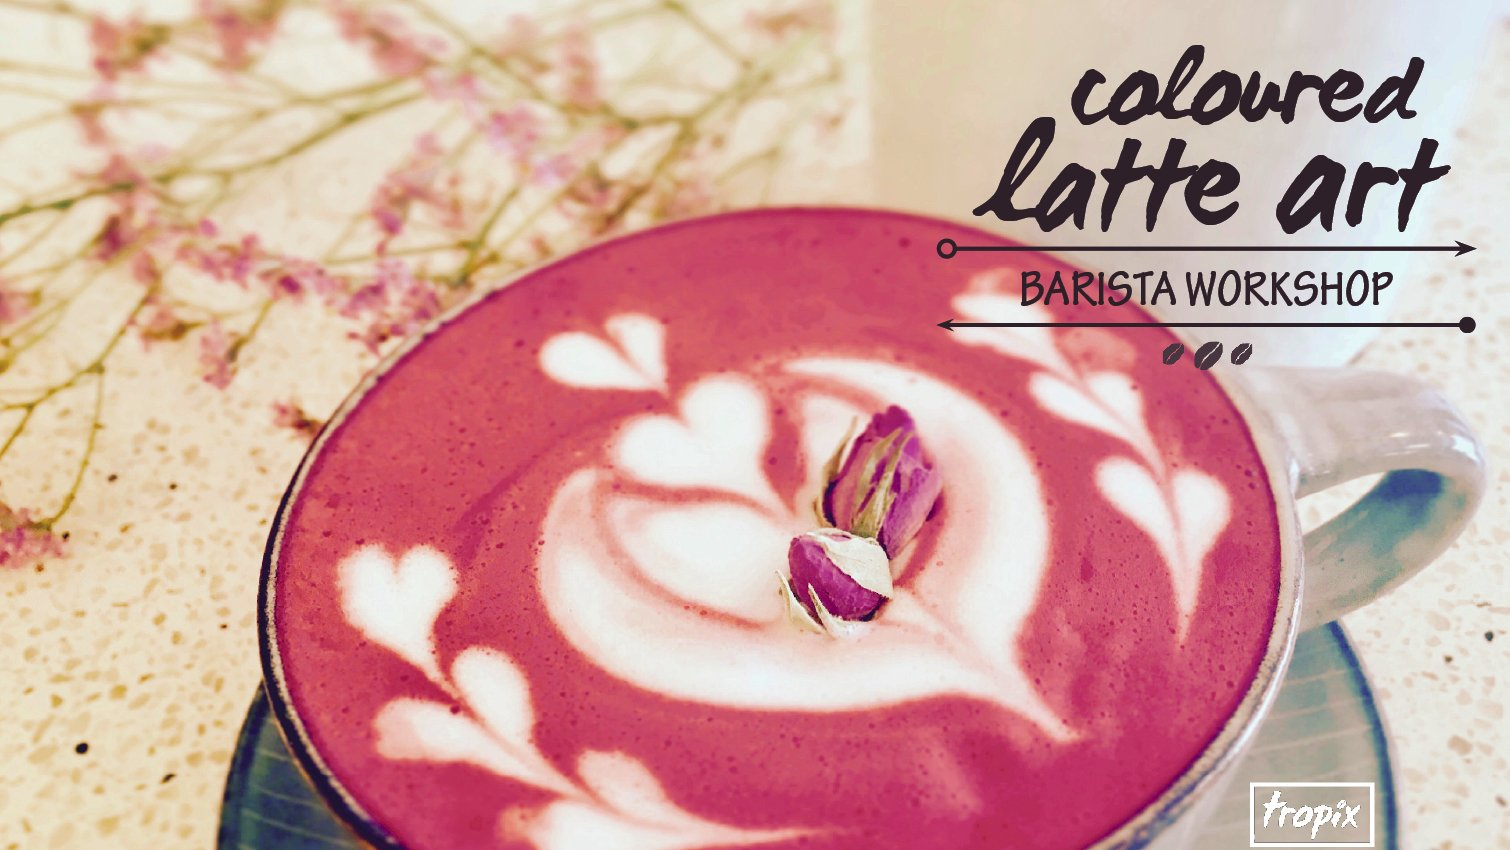 Coloured Latte Art Workshop